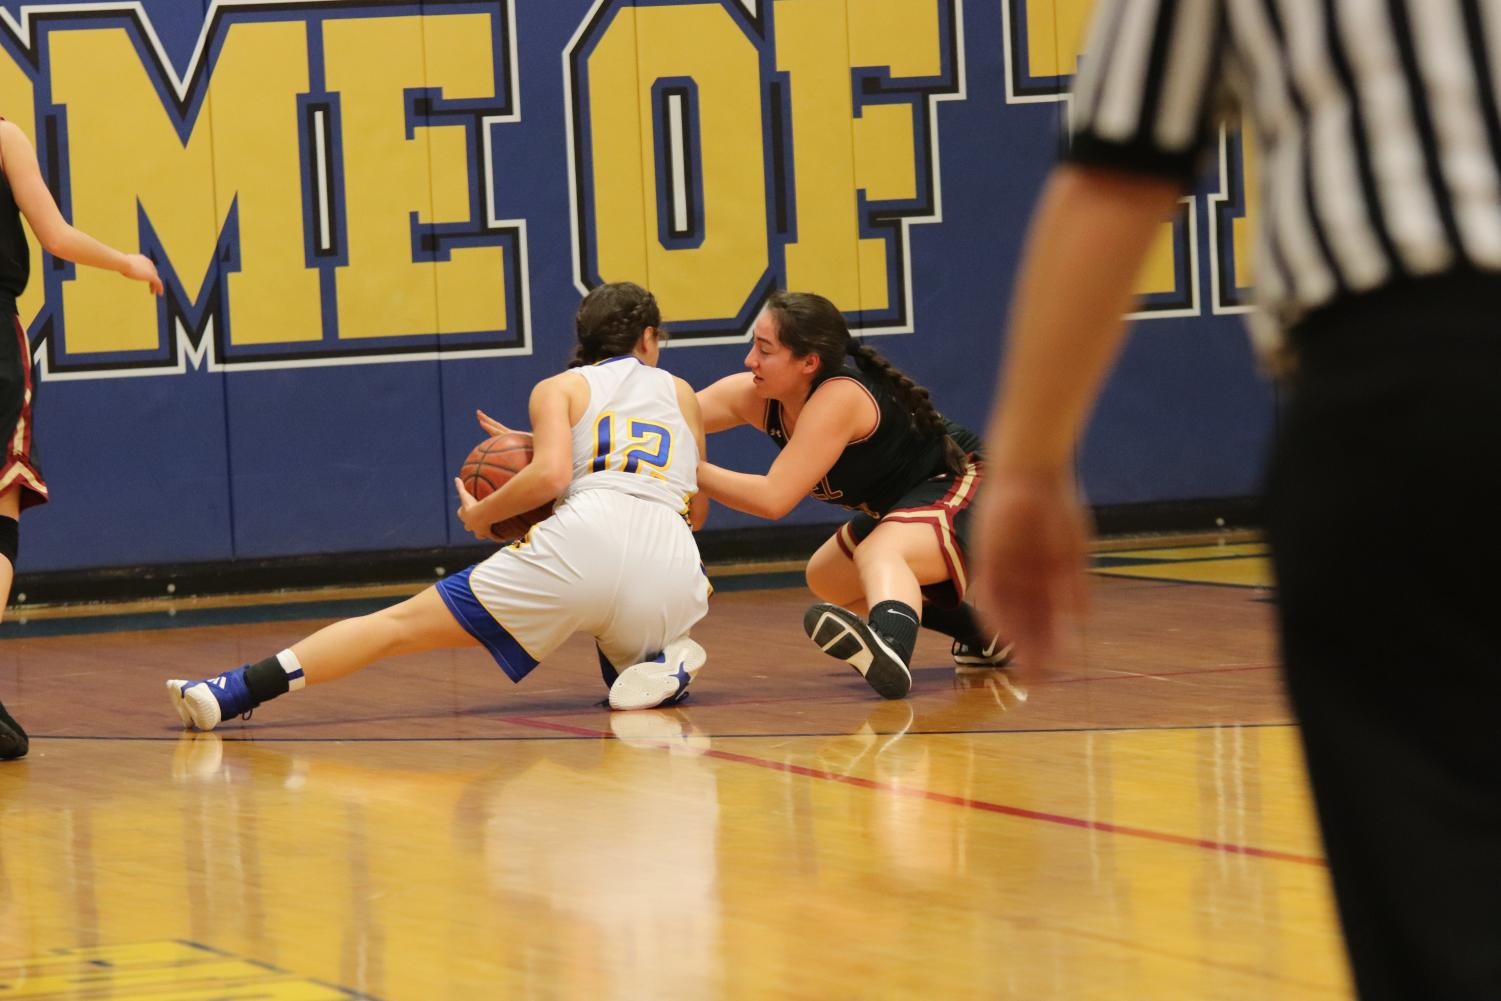 Morgan Pulido protecting the ball from an opponent. She has been playing on the varsity level for the past two years and has continued to work hard everyday.